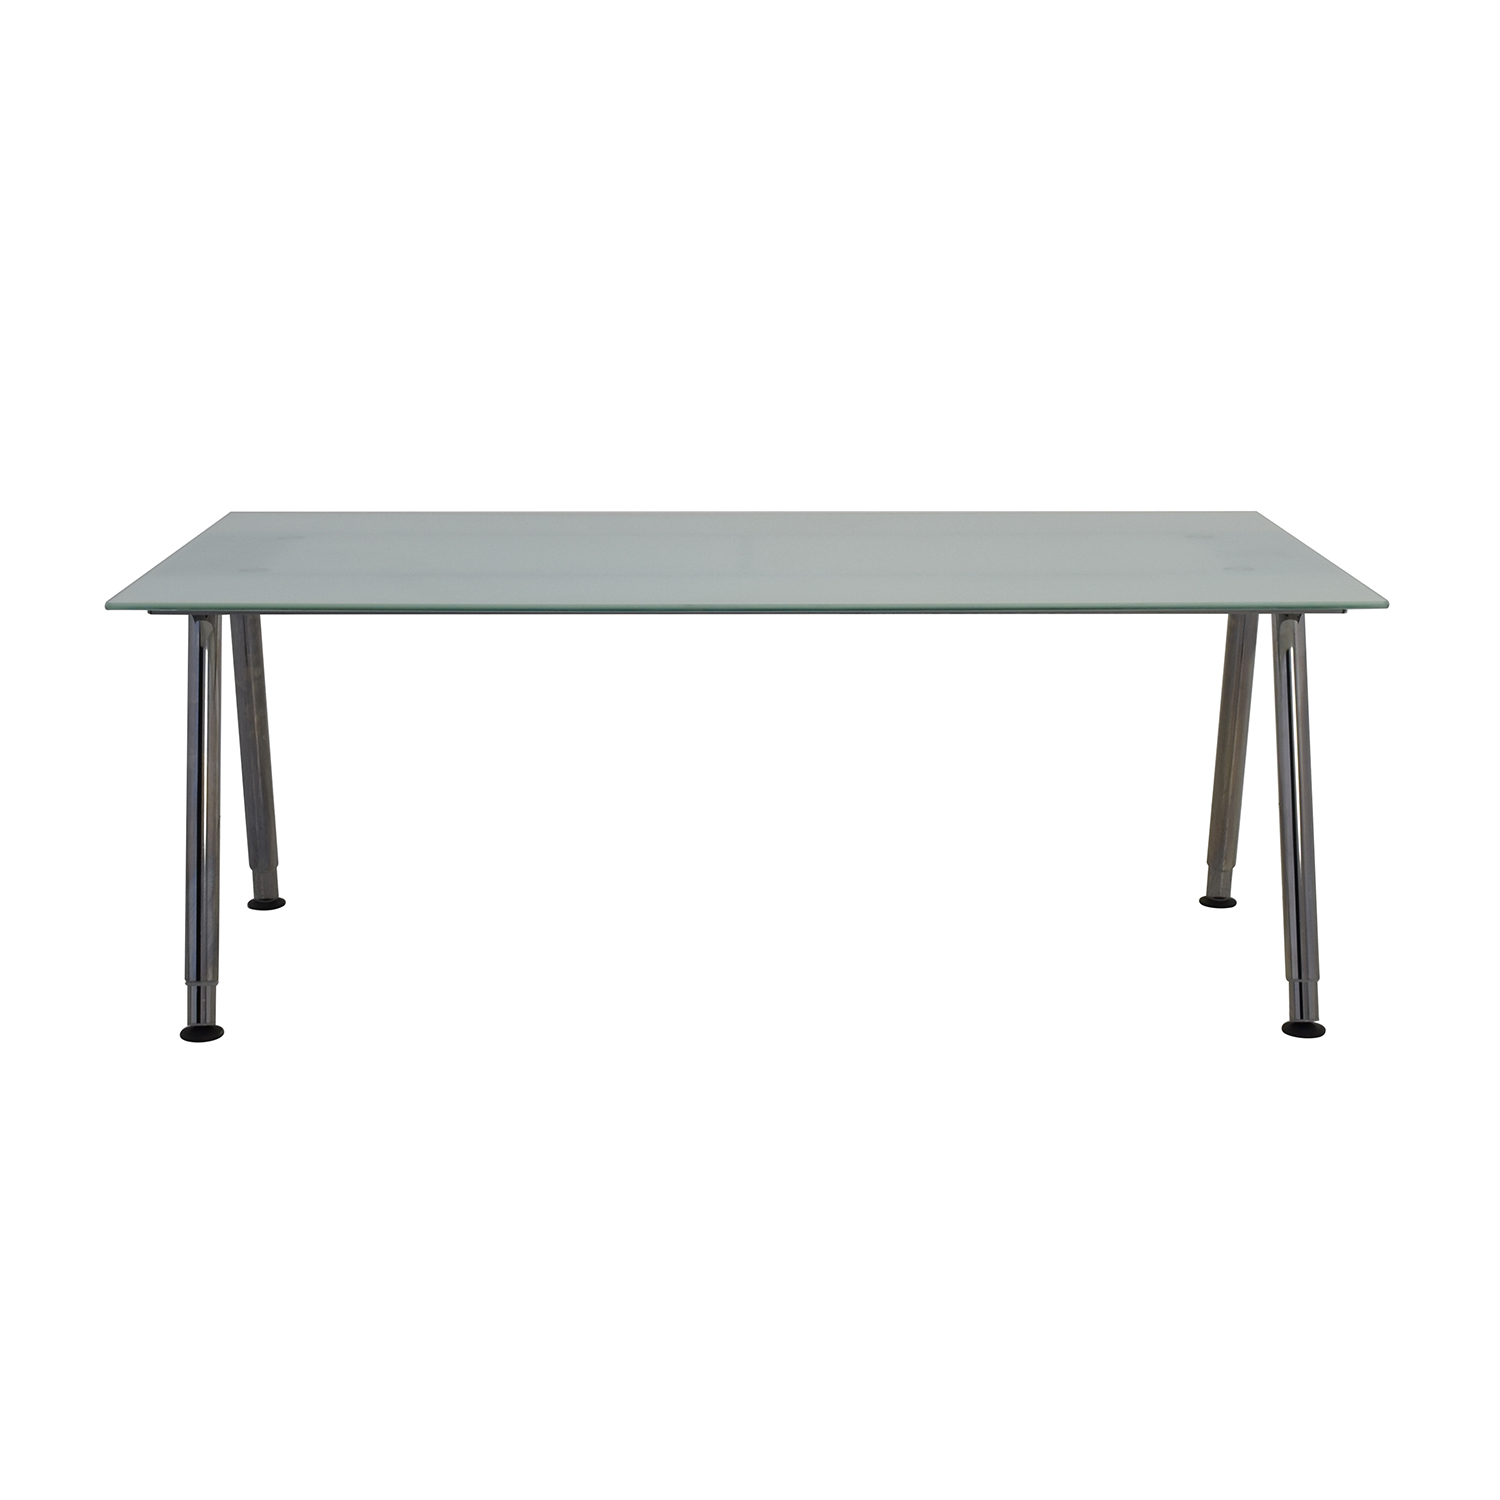 IKEA IKEA Galant Glass Top Desk Dimensions ...